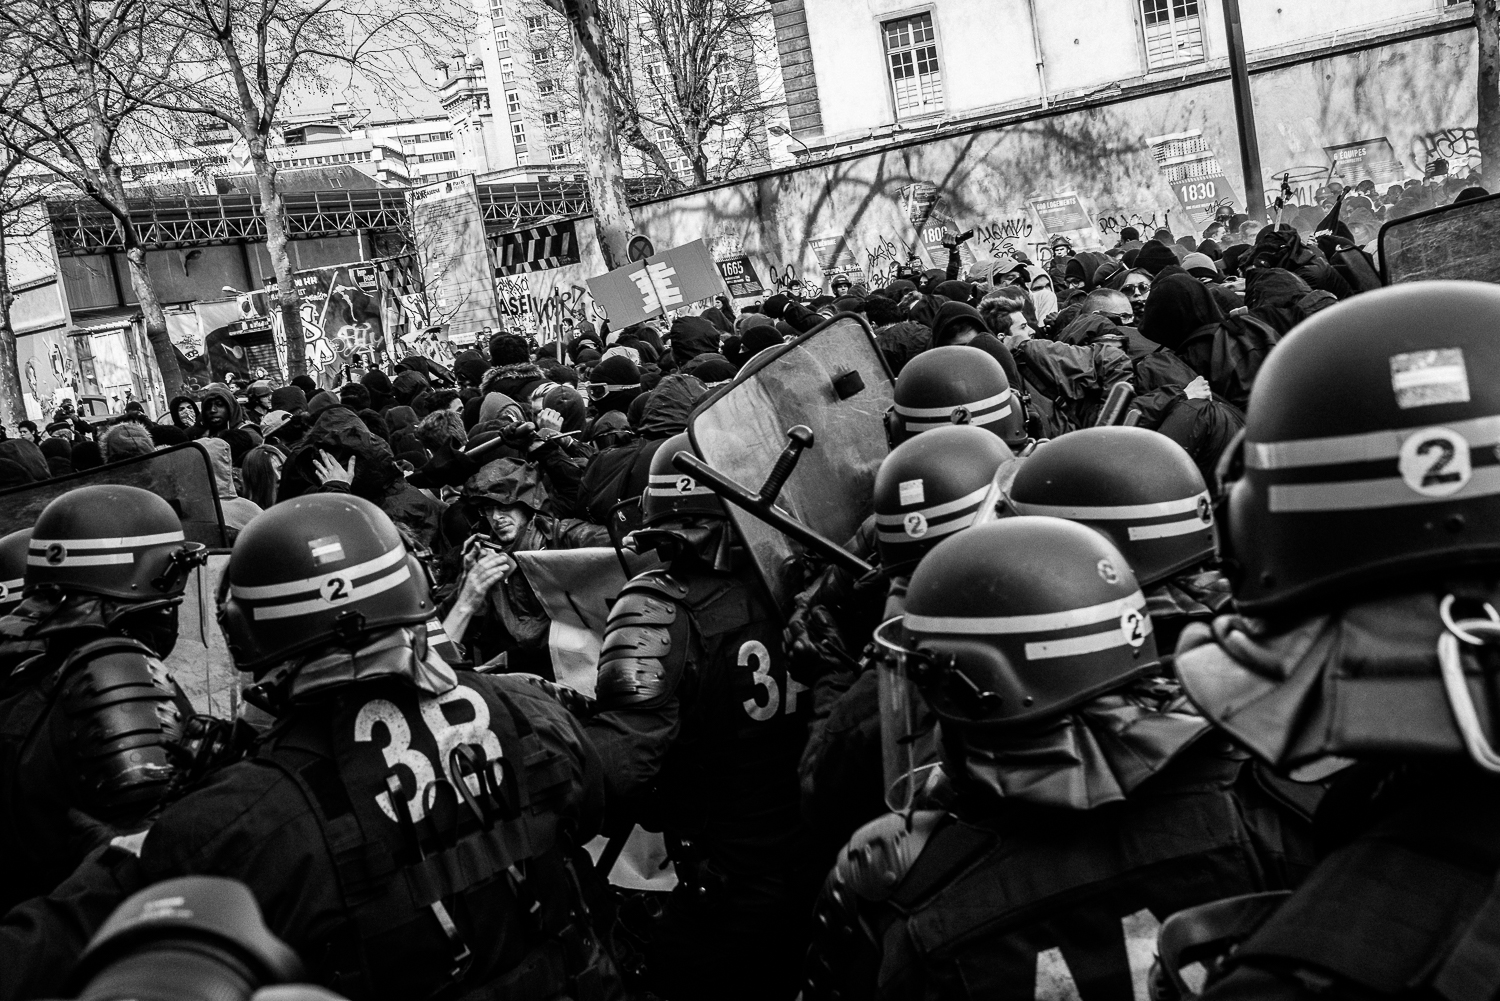 Riot police charging towards the protestors,5th April 2016.